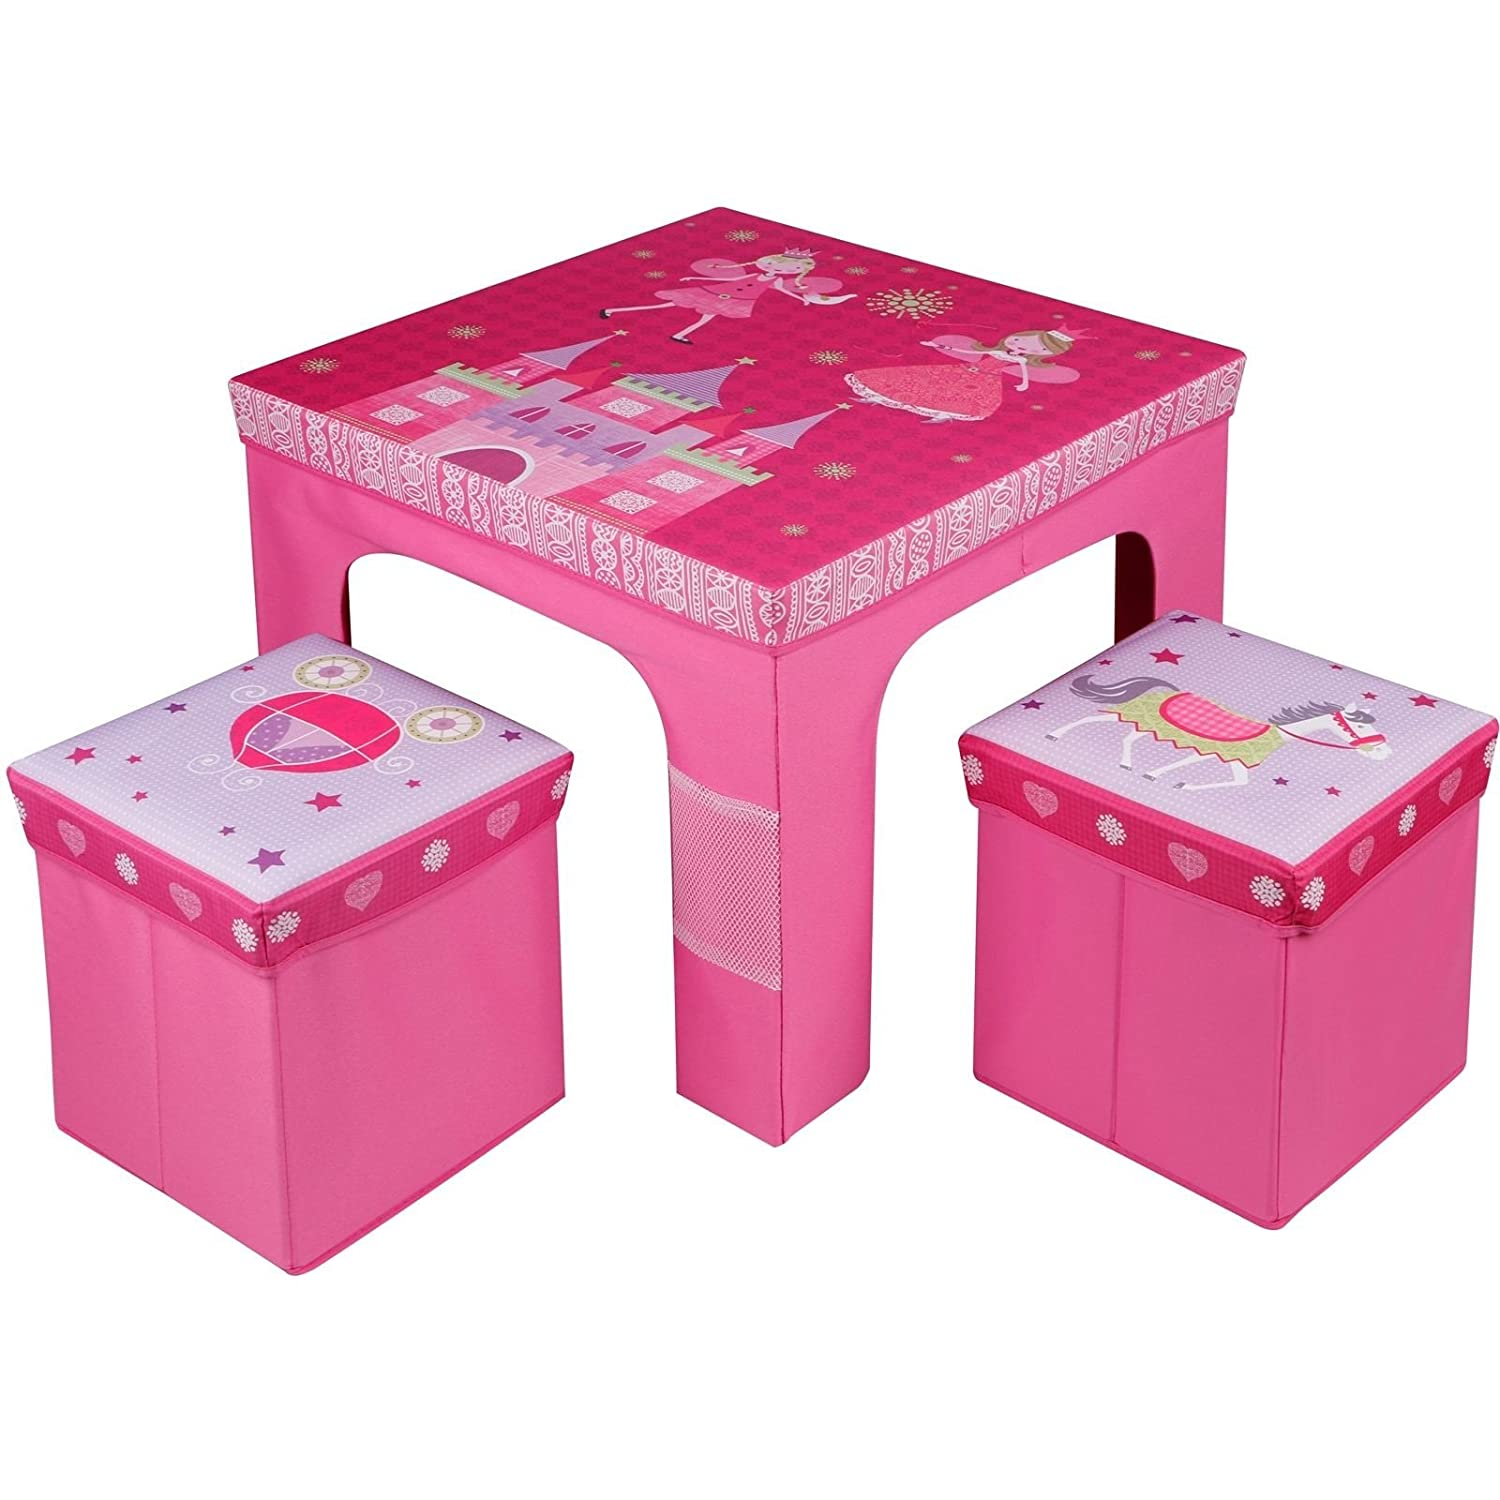 Rexco Childrens Kids Toddler Square Folding Princess Design Table And Chairs Stool Set Foldable Playroom Bedroom Childs Nursery Furniture Xmas Gift Eurotrade (w) Ltd 2004028